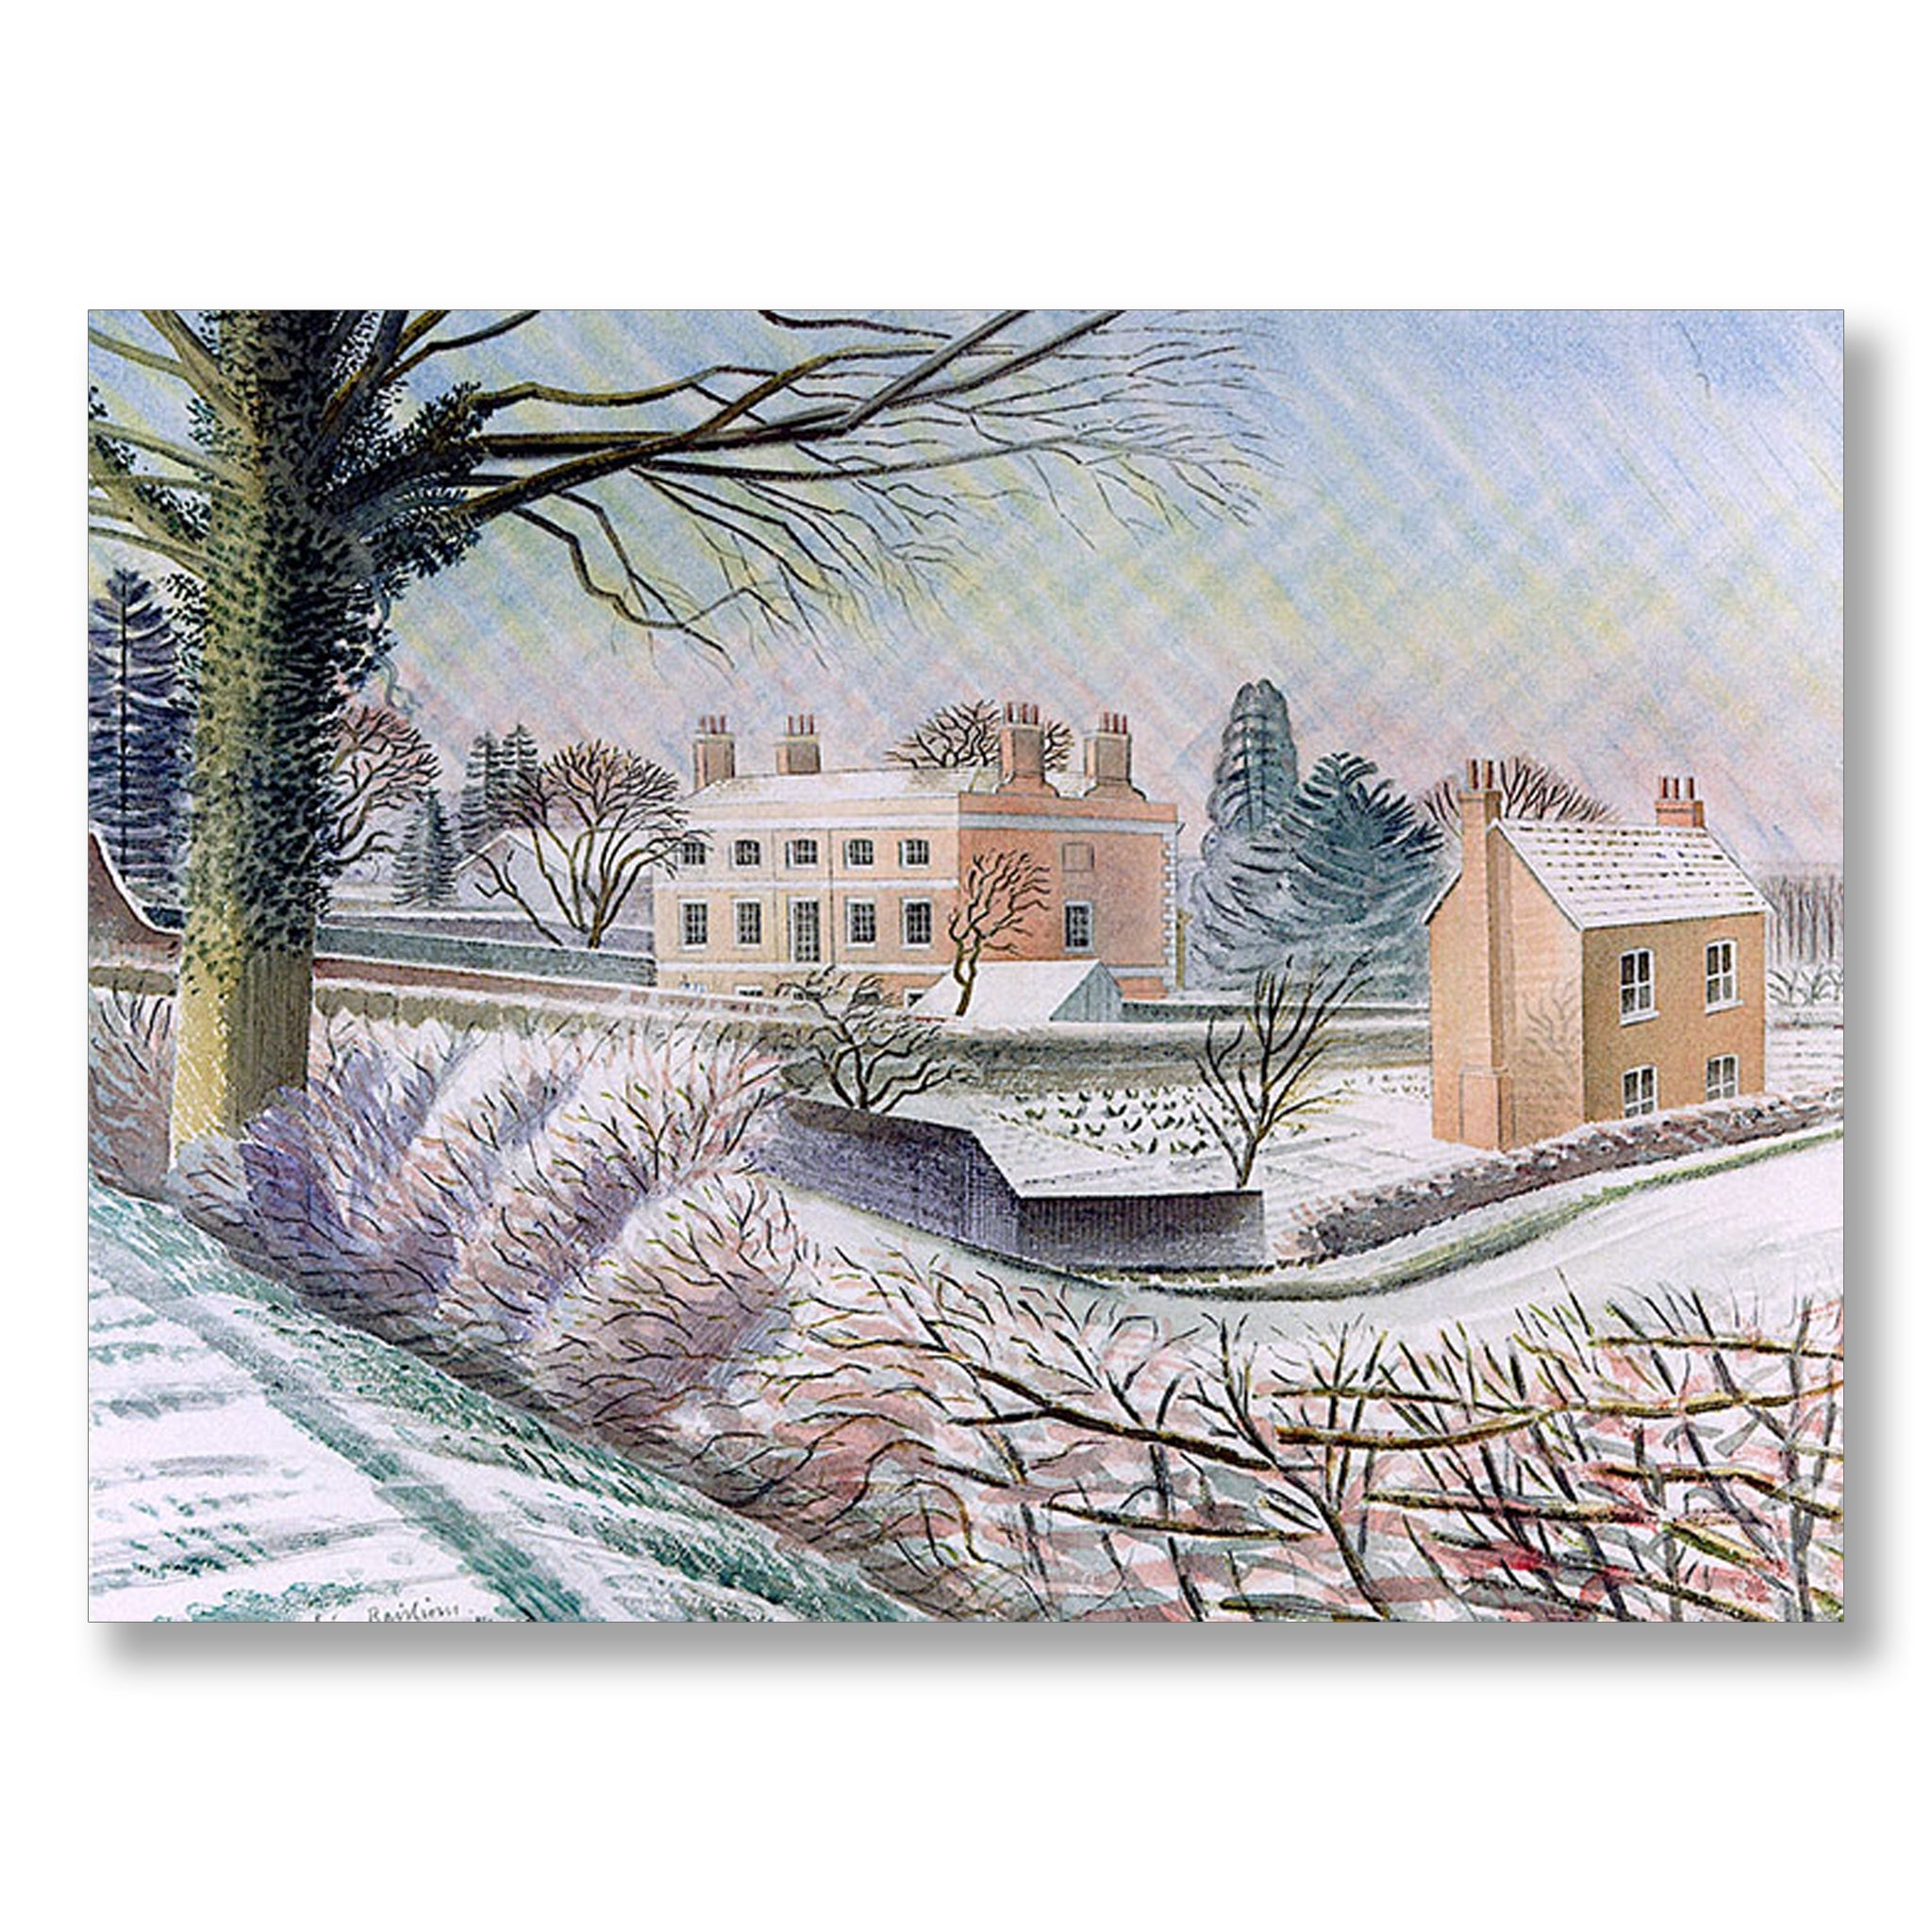 Vicarage in Winter by Eric Ravilious